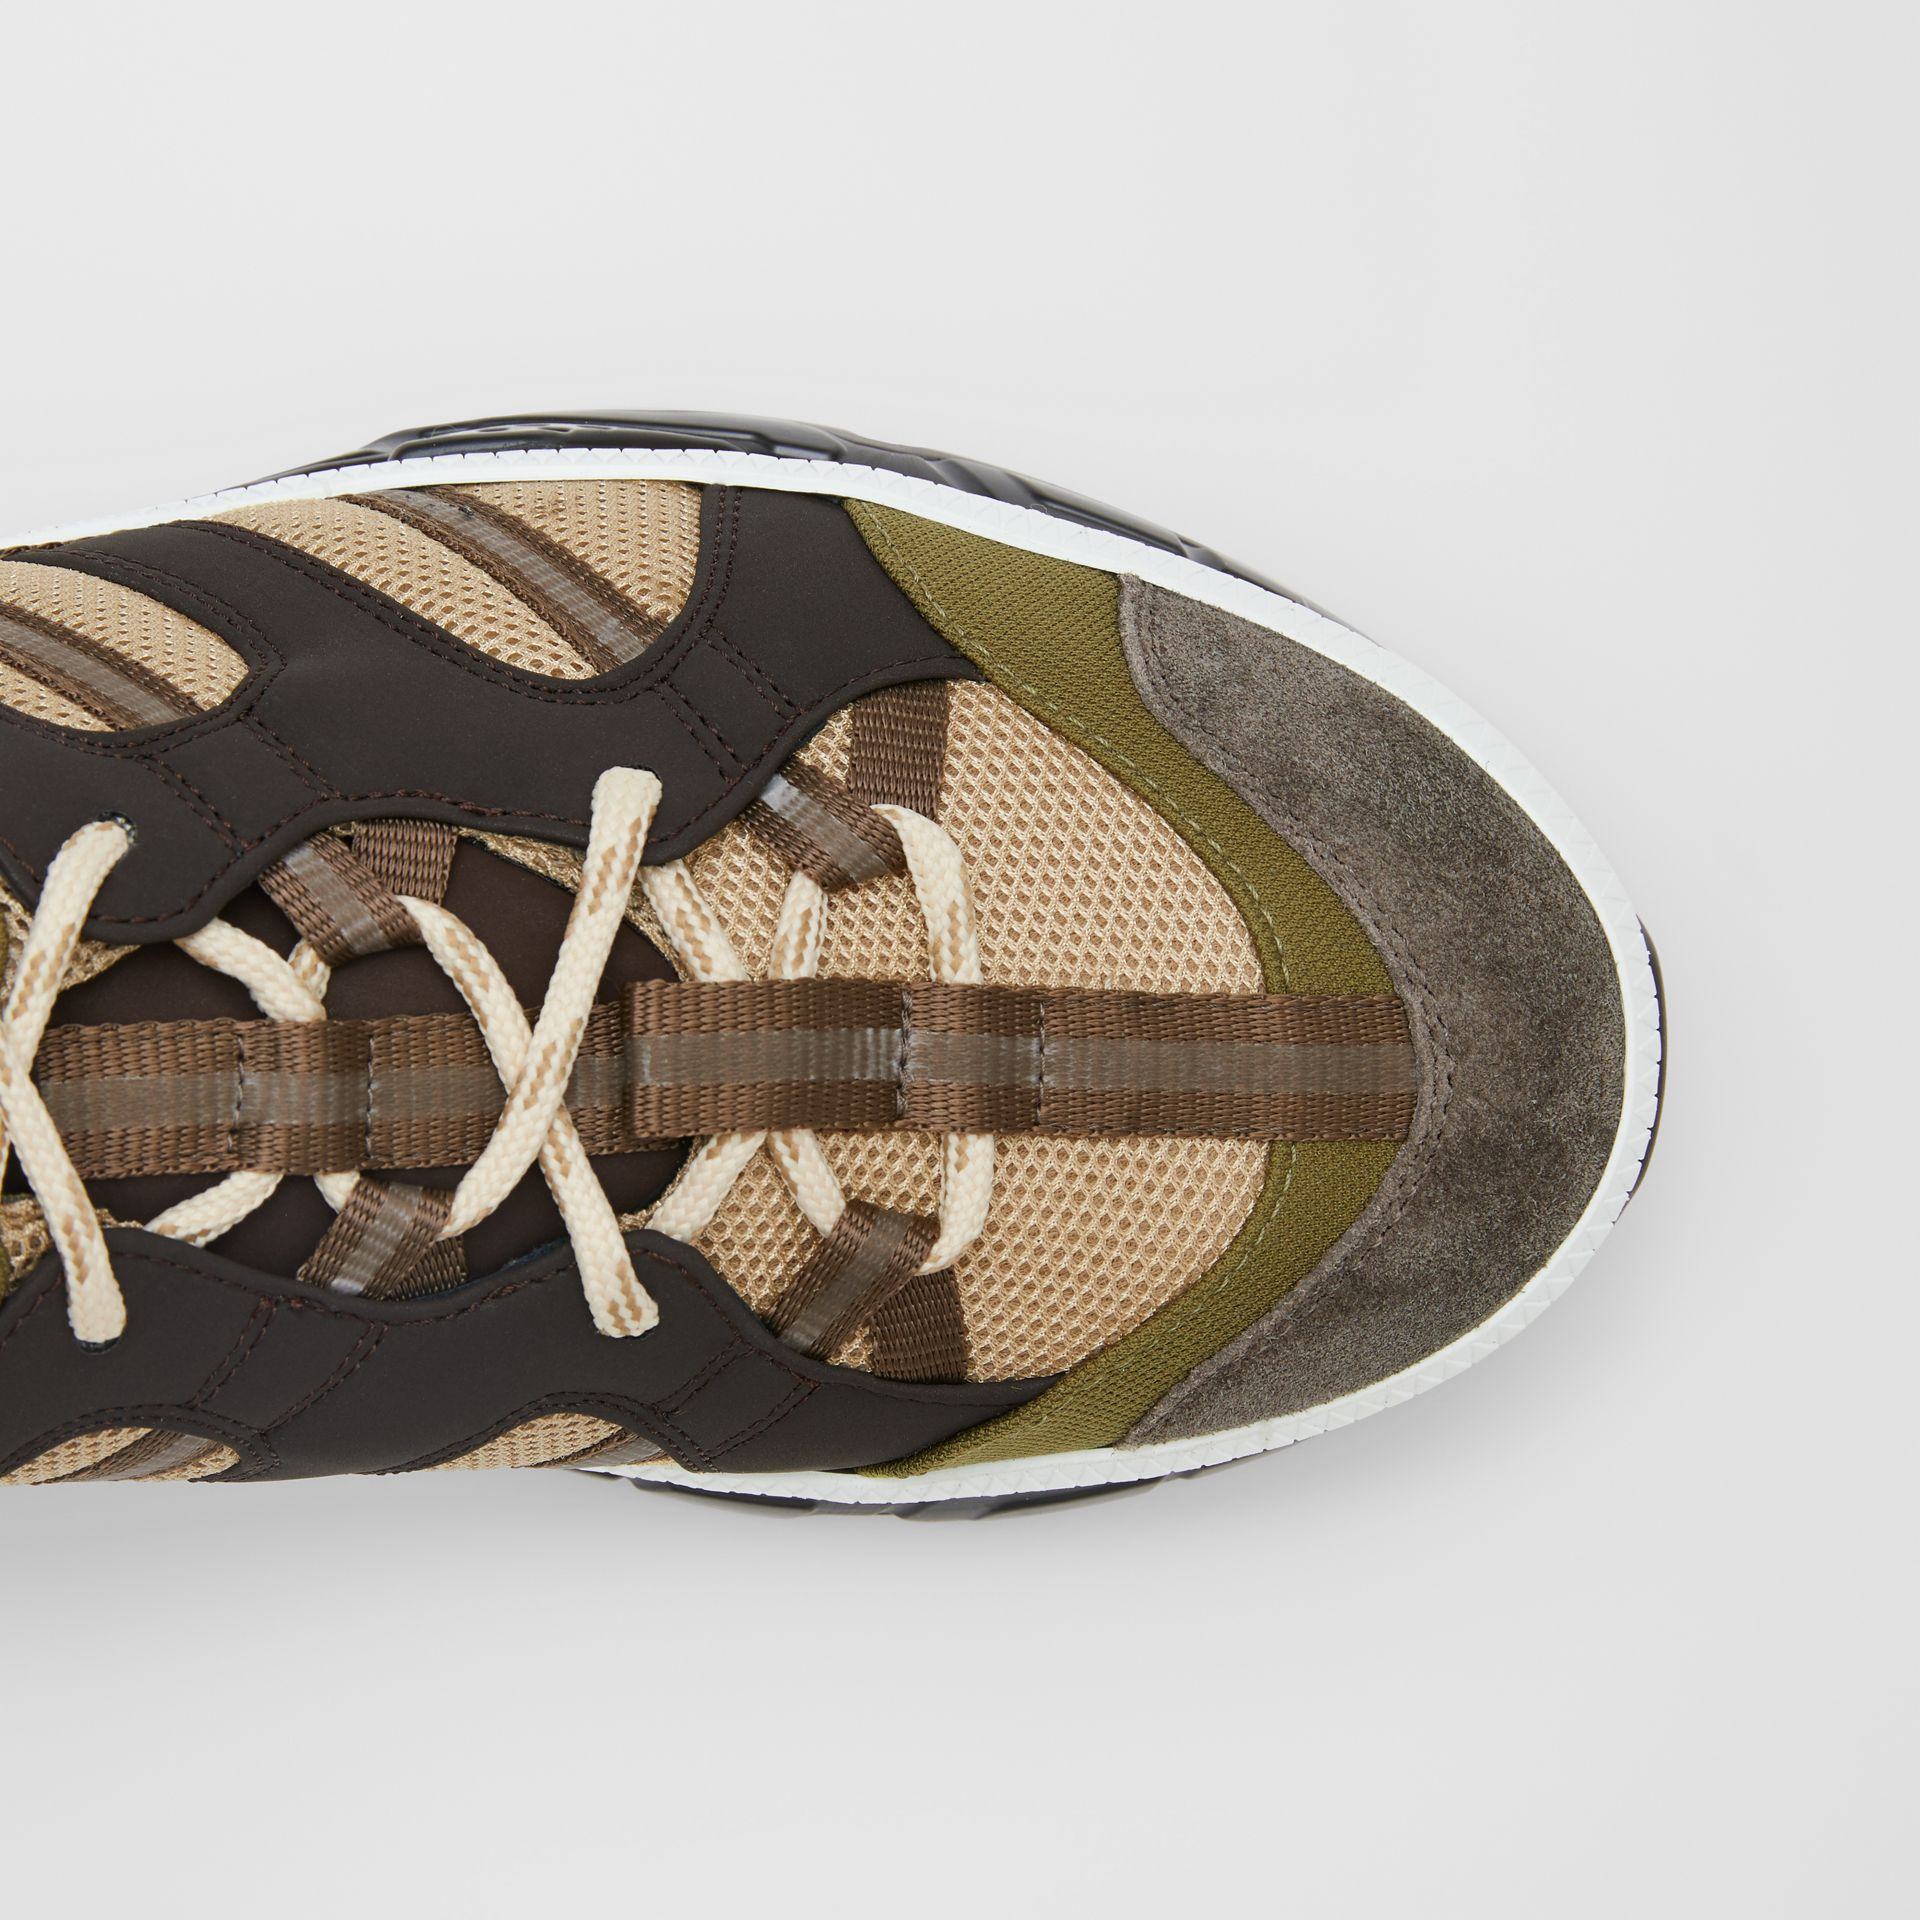 Mesh and Suede Union Sneakers in Khaki / Brown - Men | Burberry - gallery image 1